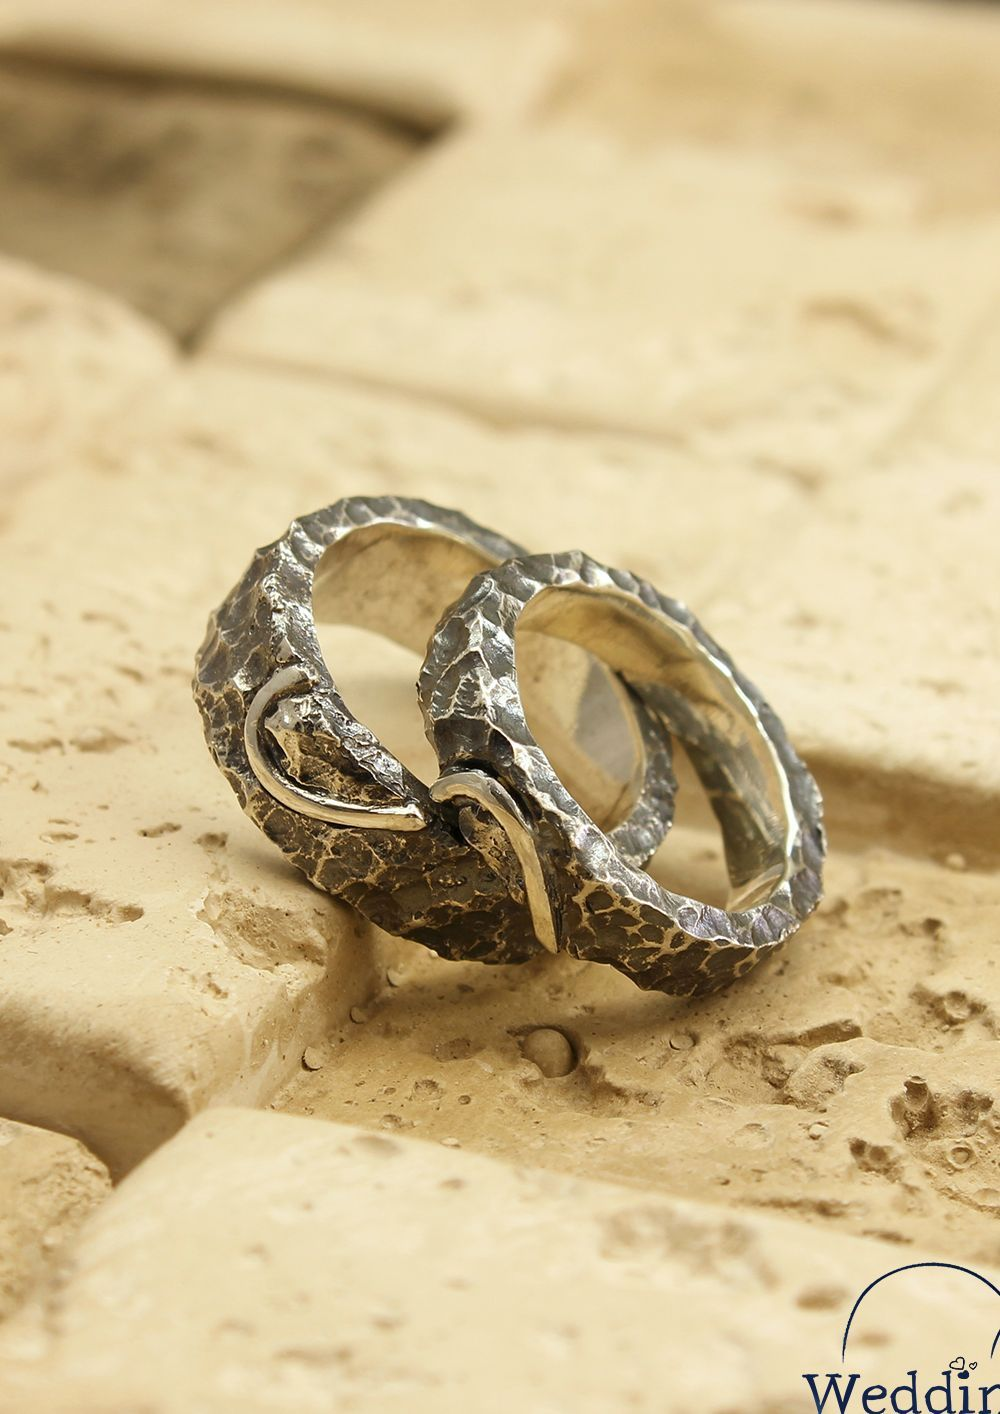 Wild heart wedding bands set, His and Her half heart rings